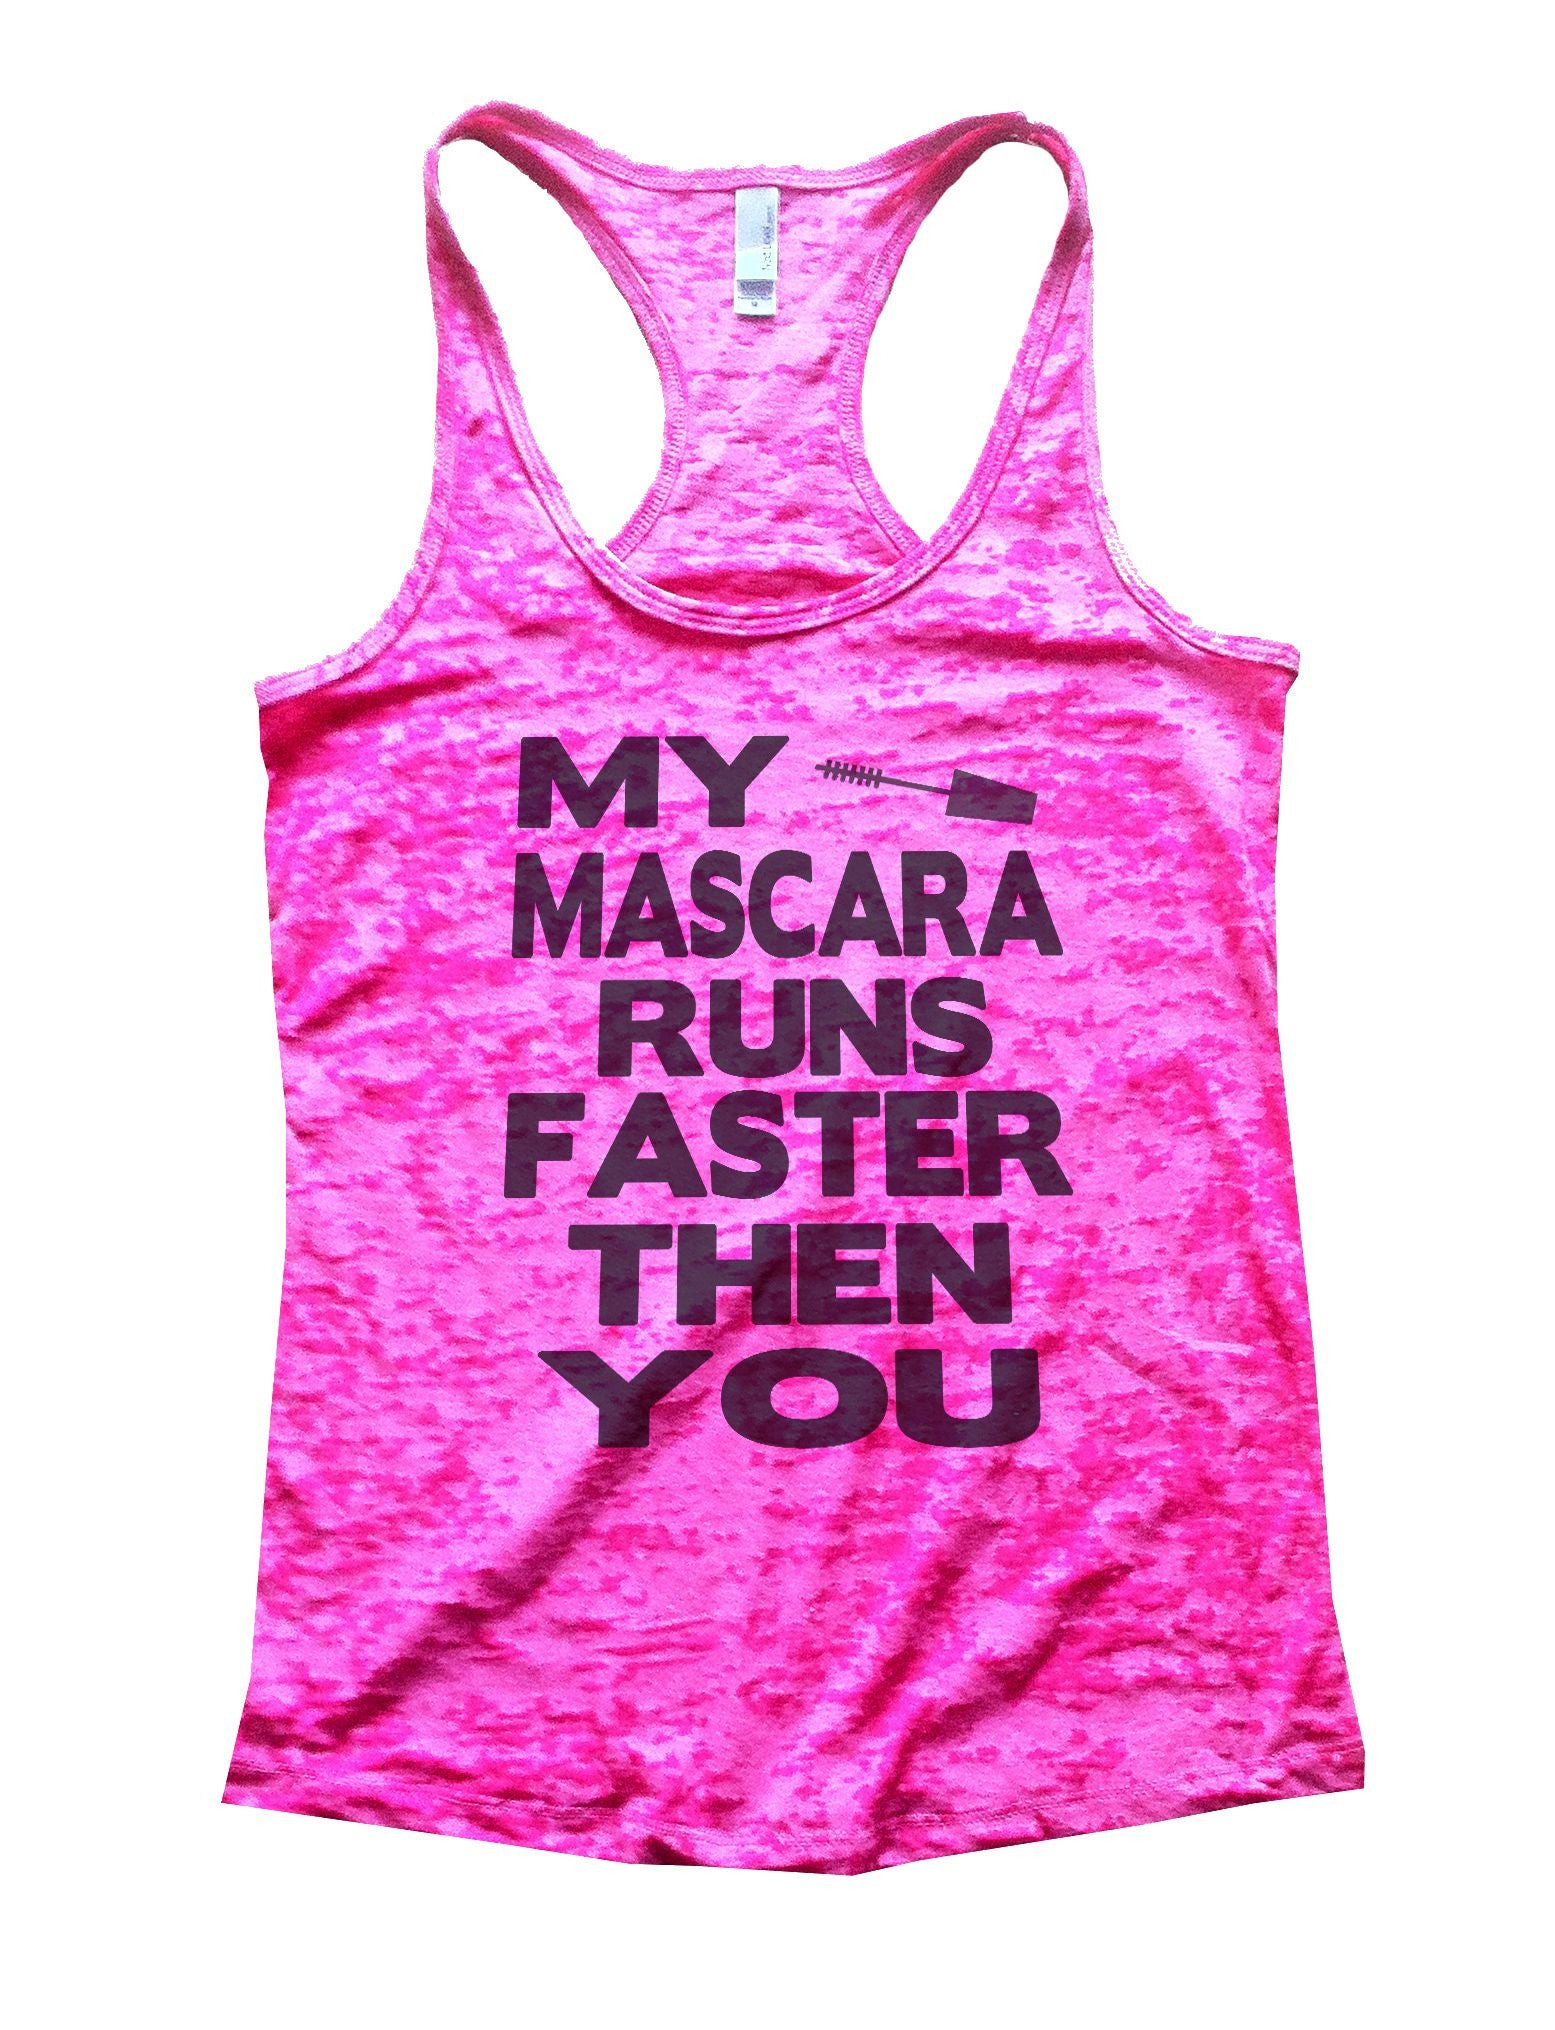 My Mascara Runs Faster Then You Burnout Tank Top By BurnoutTankTops.com - 641 - Funny Shirts Tank Tops Burnouts and Triblends  - 6